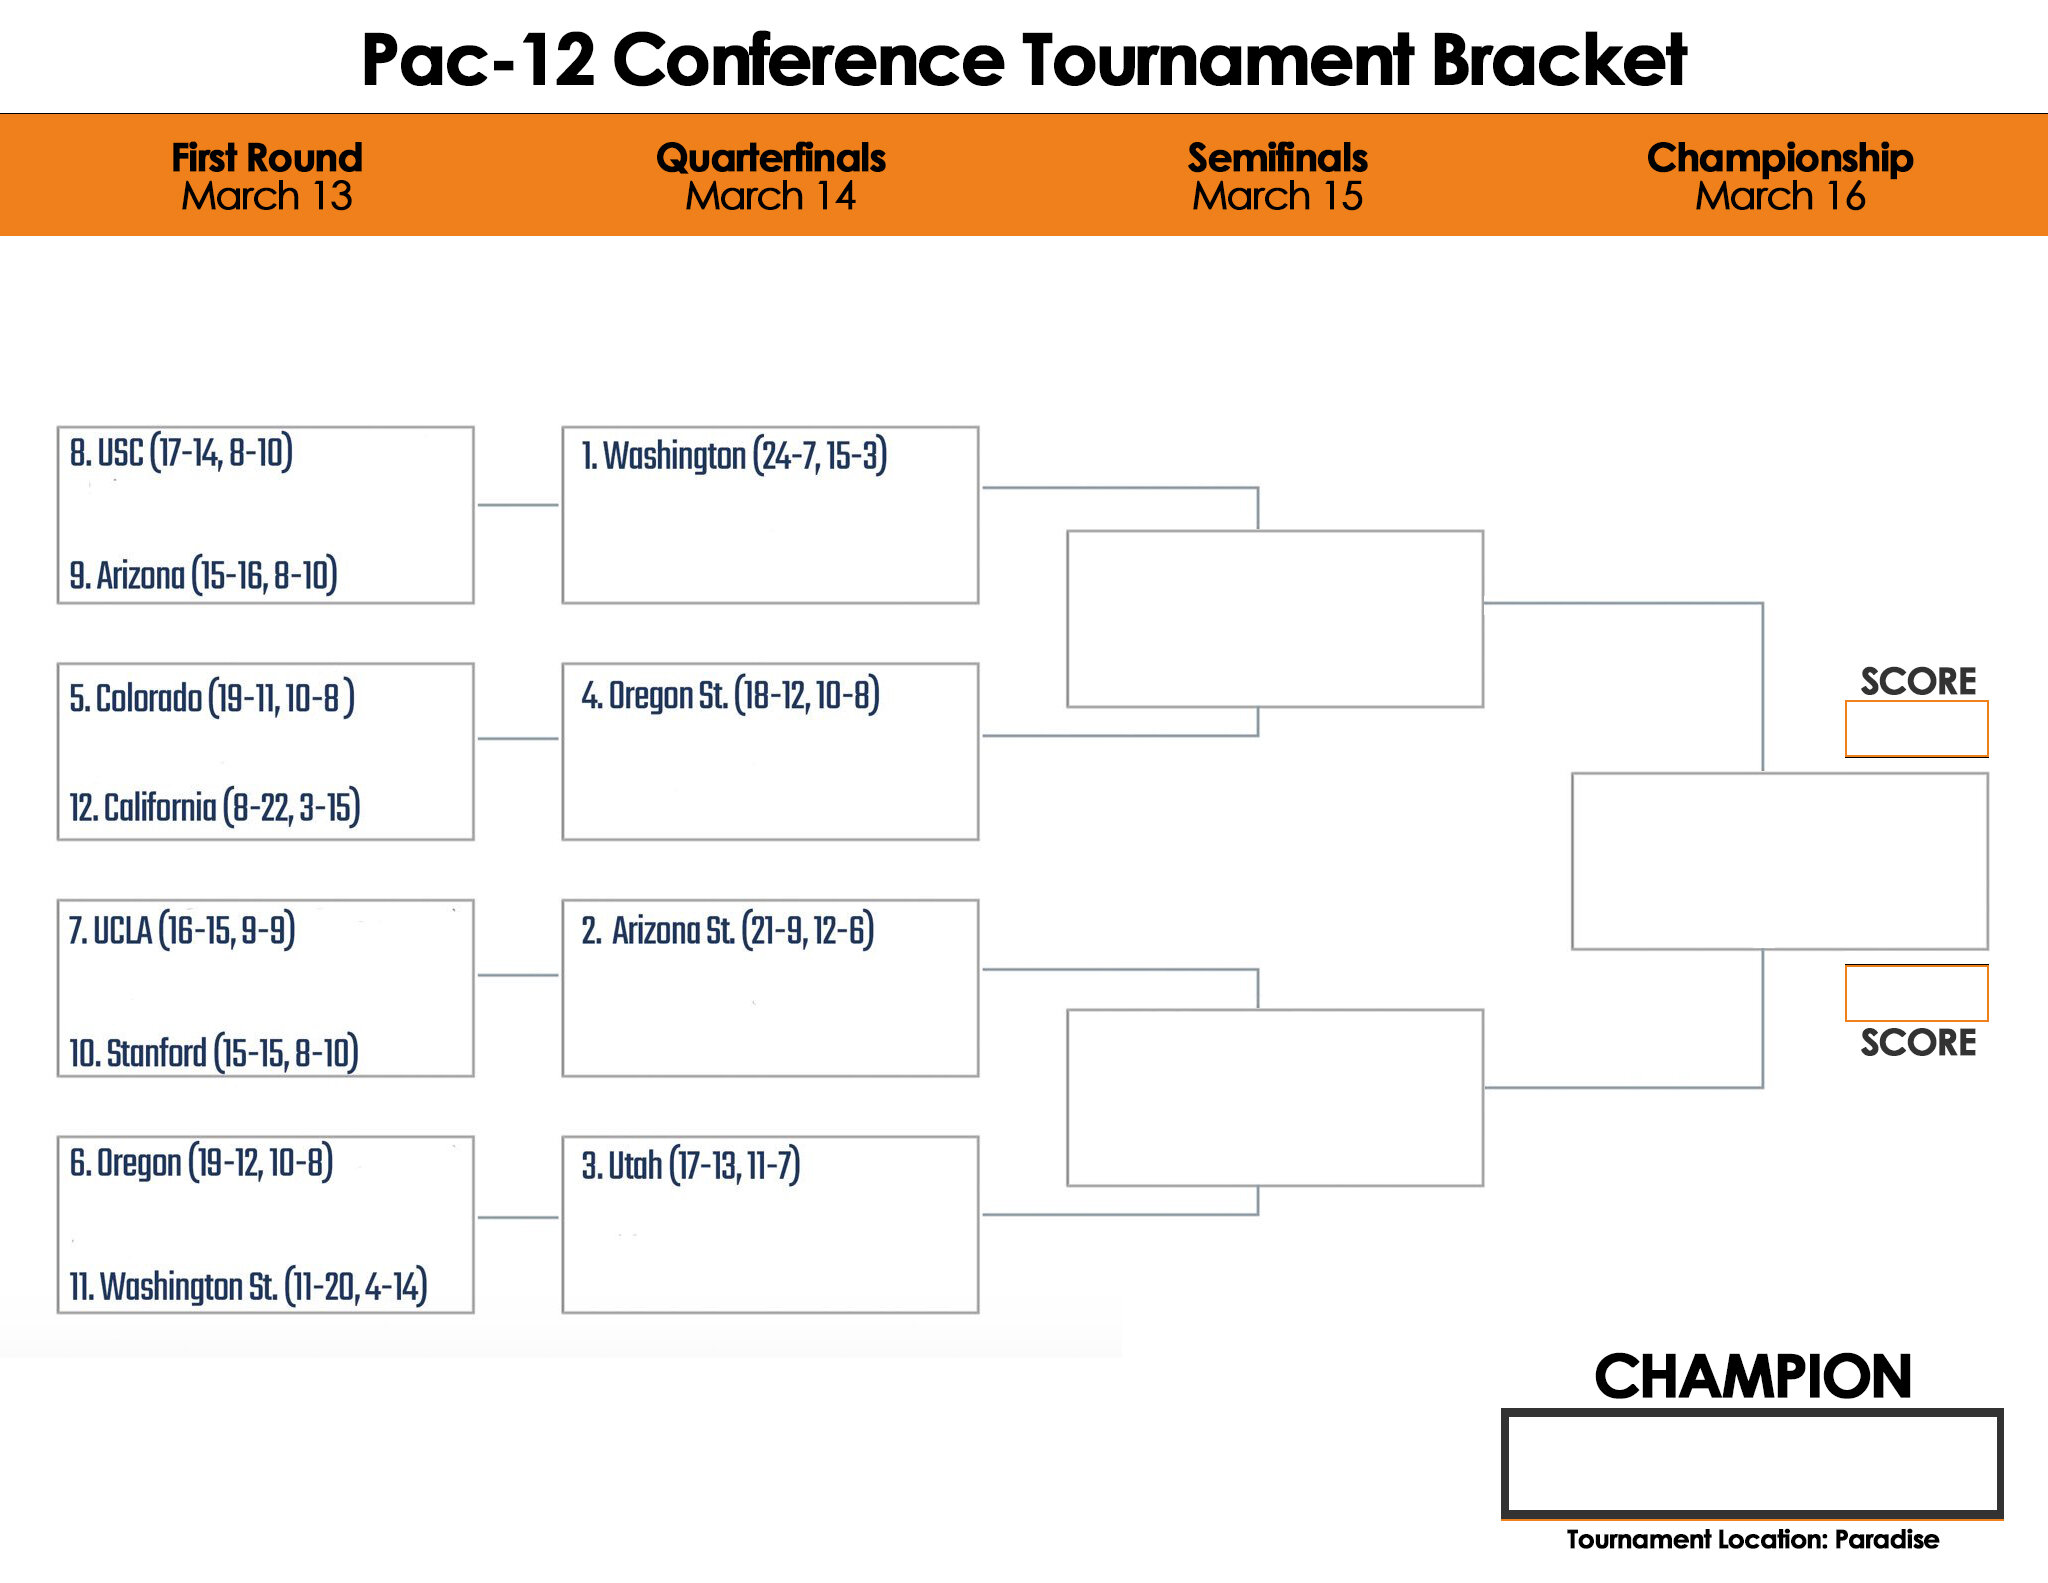 2019 PAC-12 Conference Championship Bracket